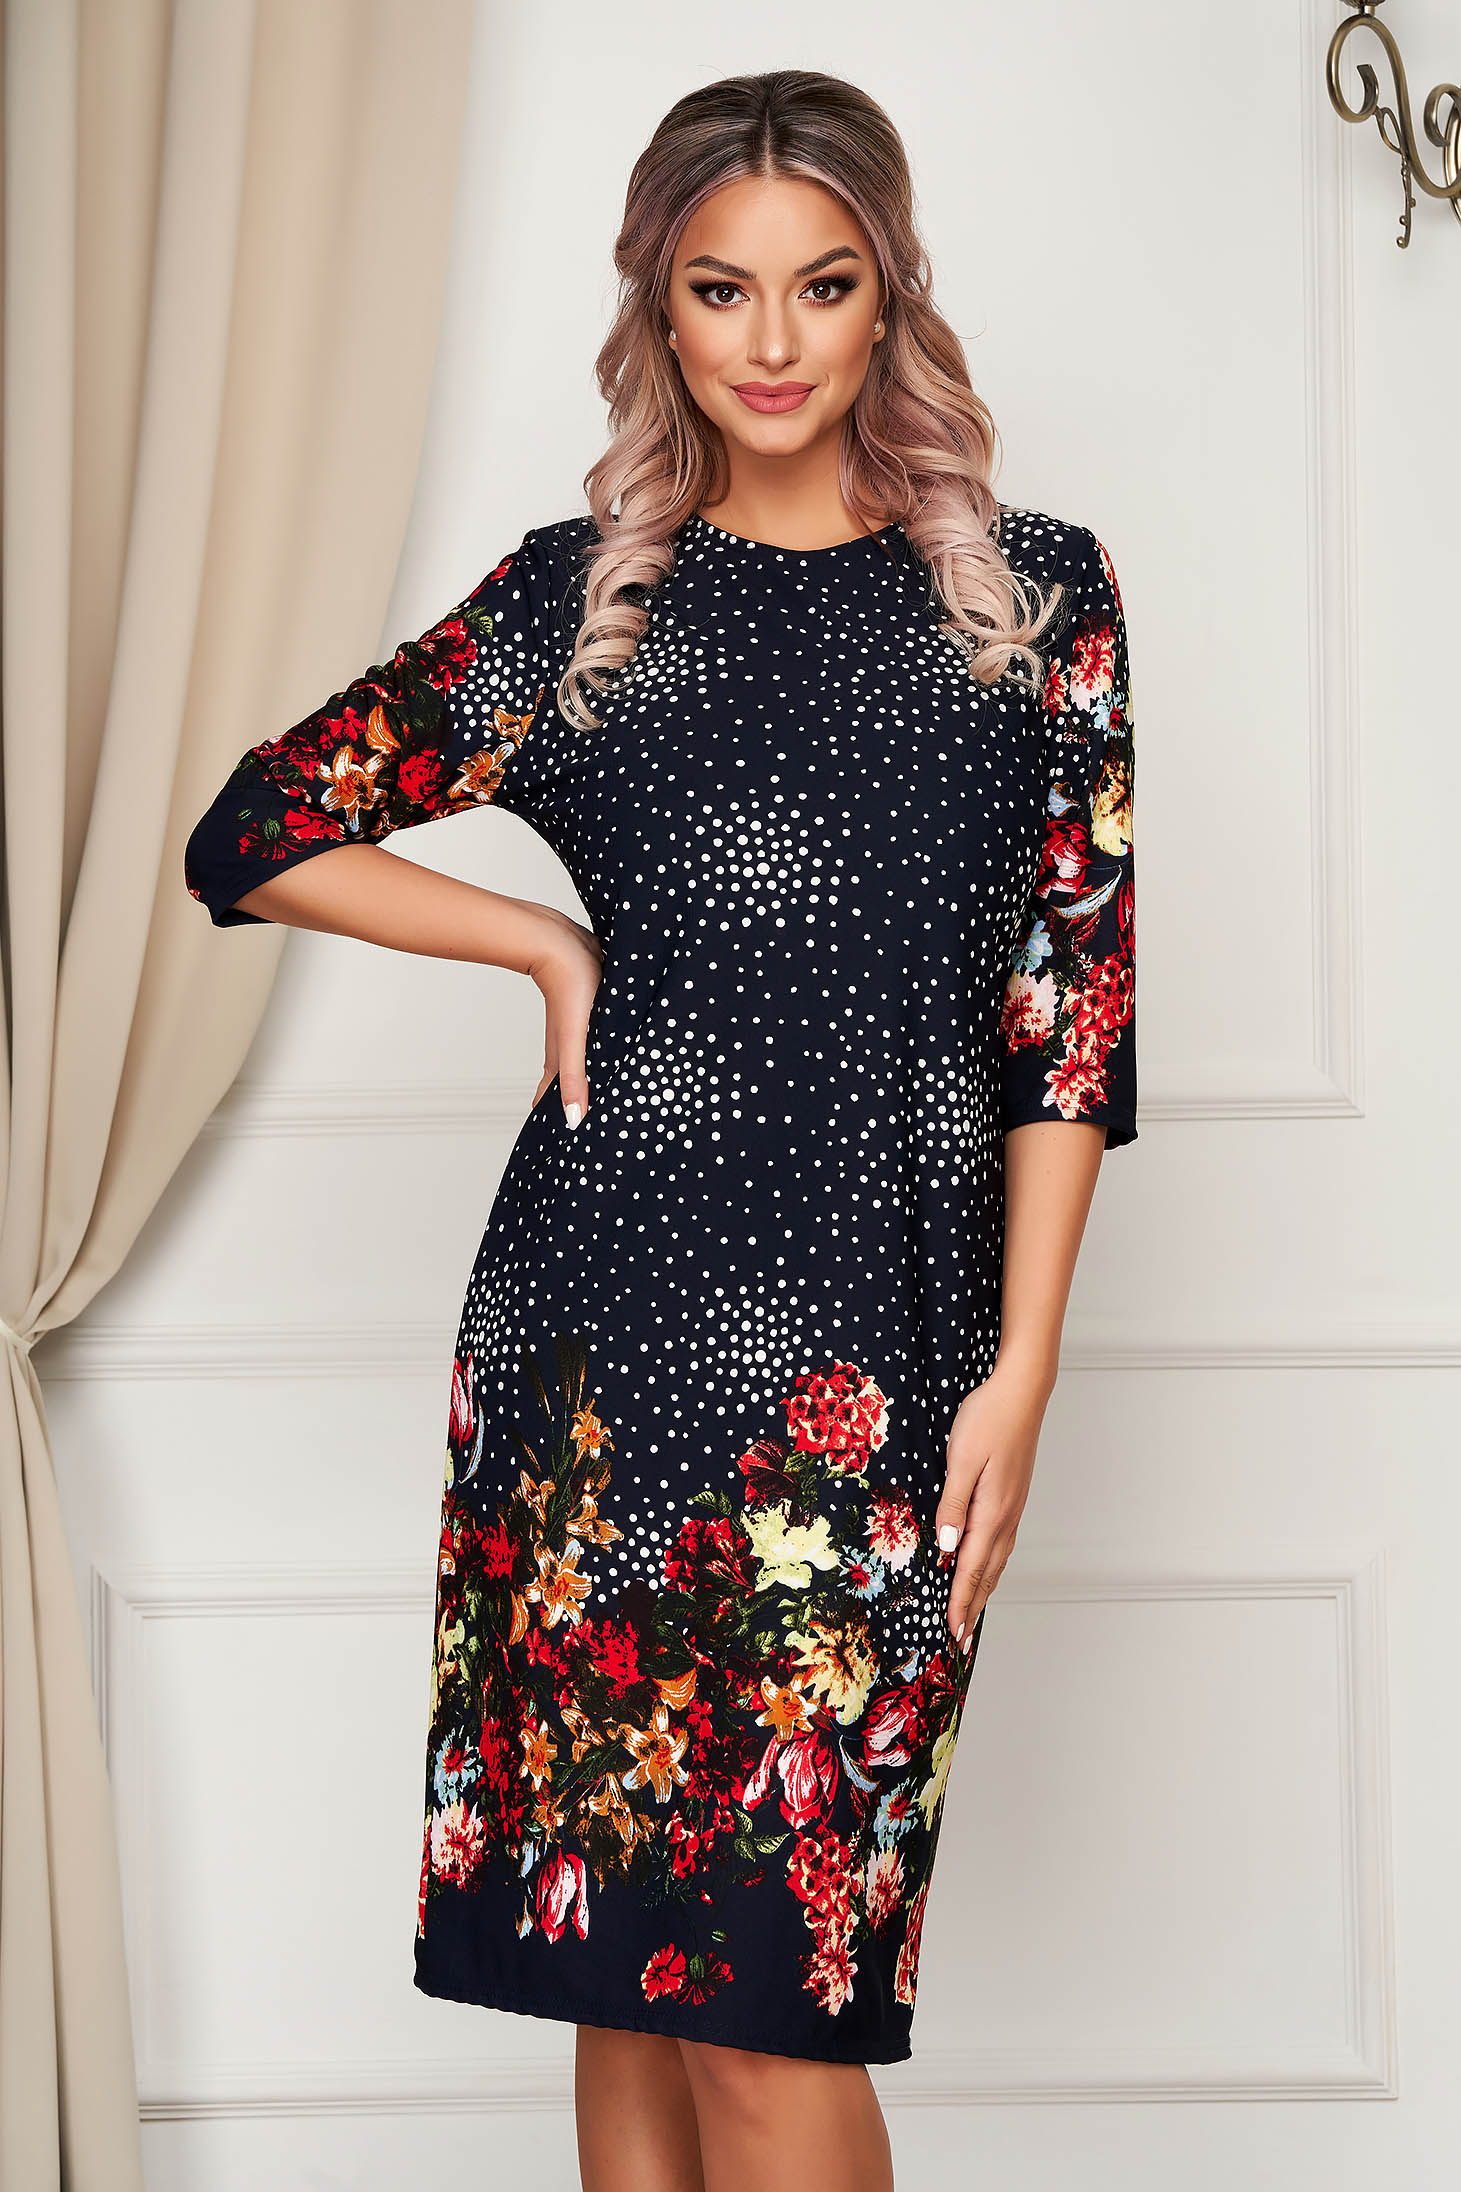 Black dress daily midi thin fabric with floral print straight